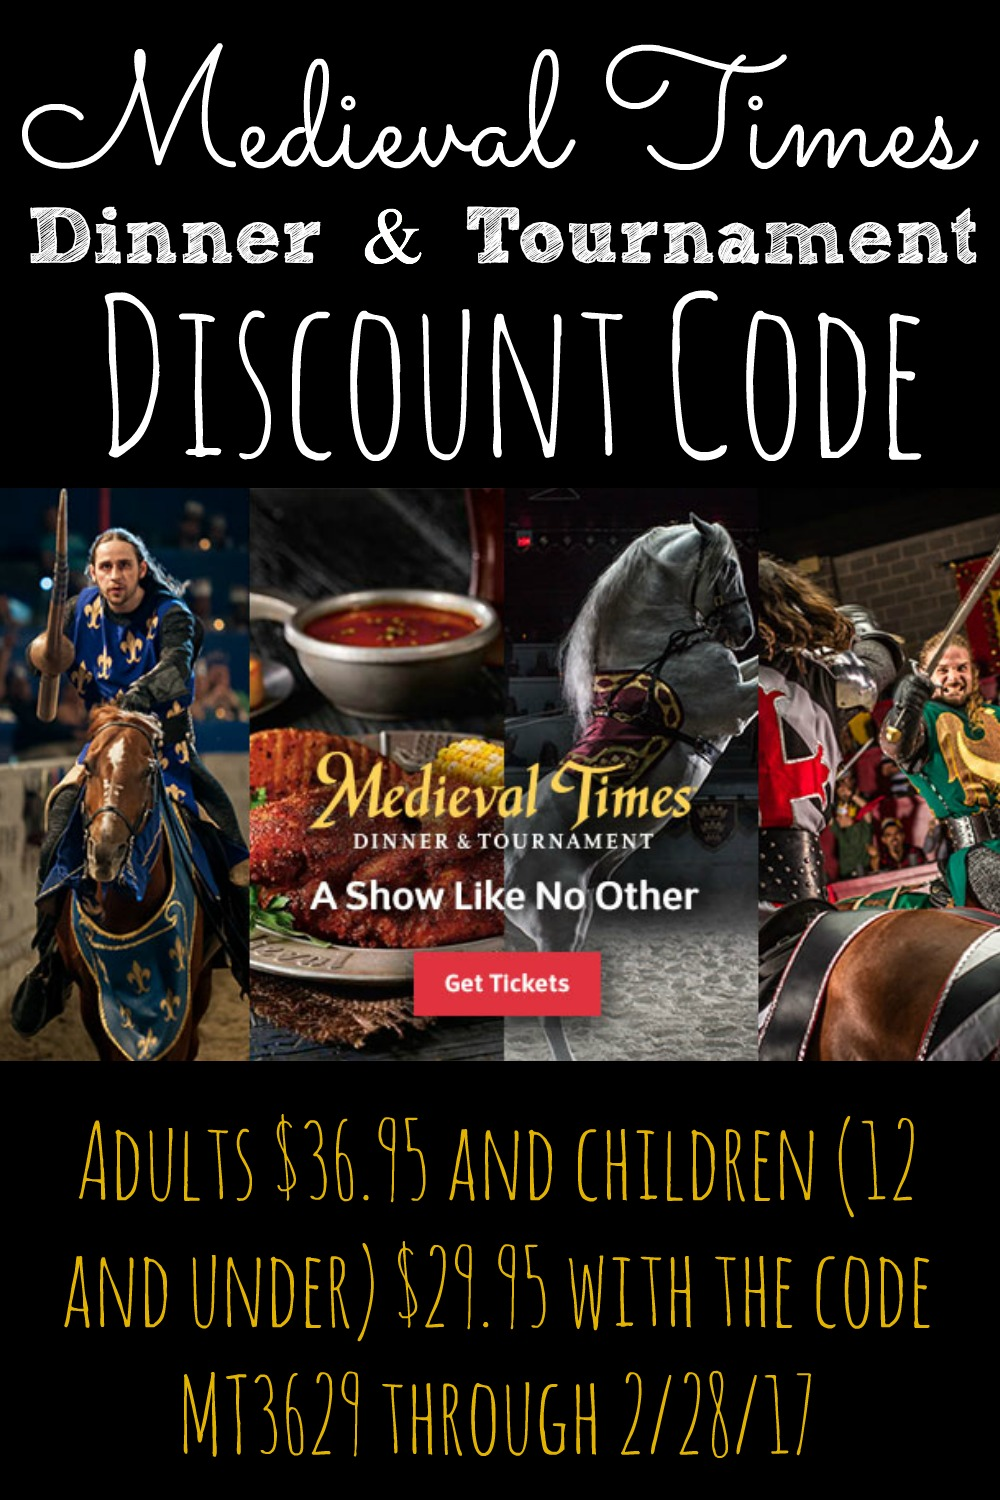 Discount coupon code medieval times